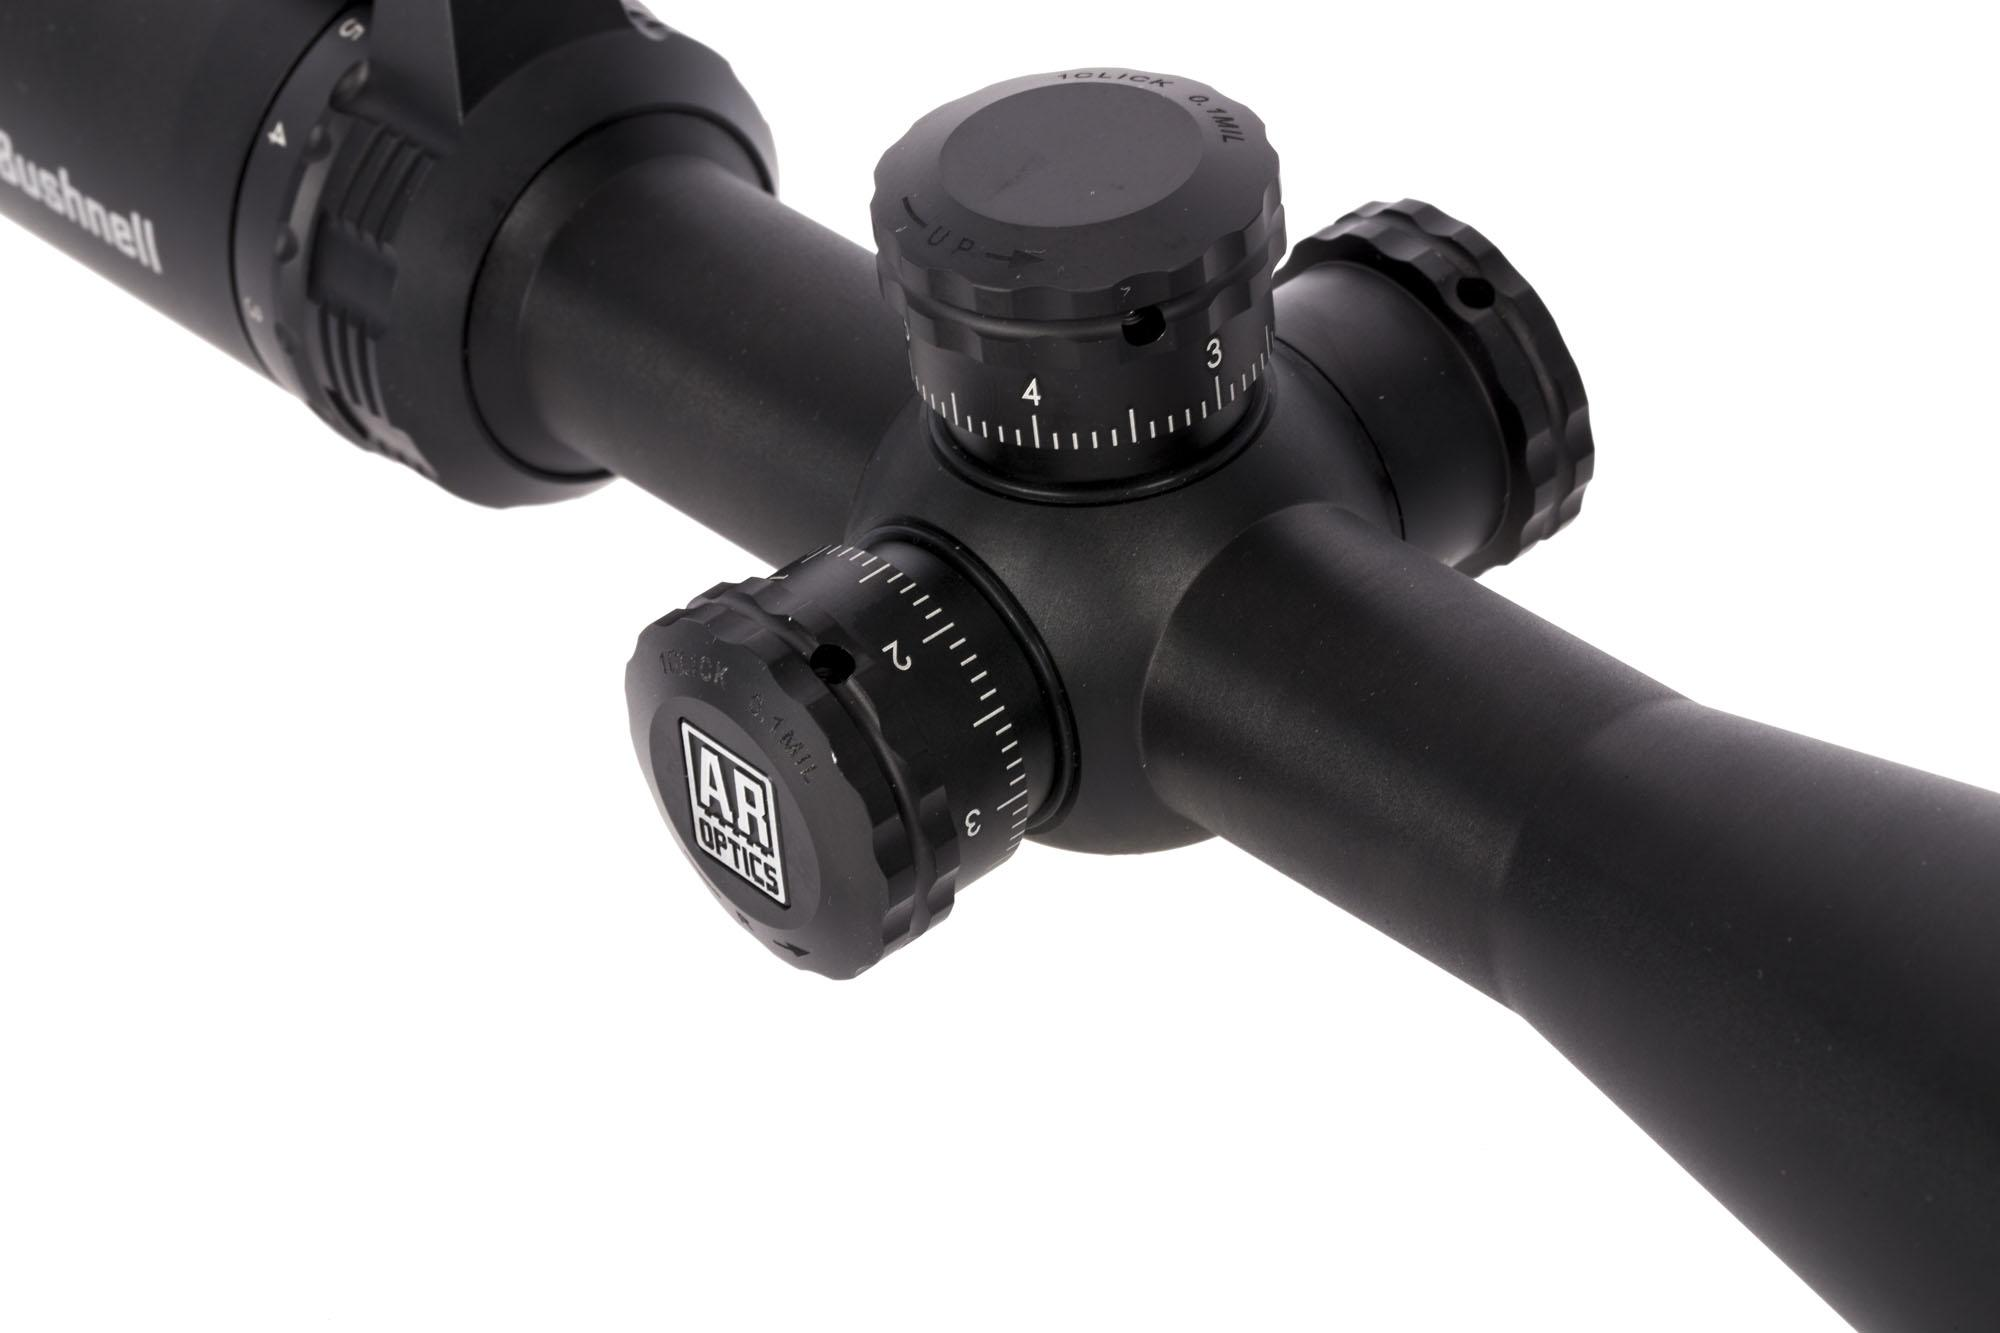 Bushnell AR Optics 3-12x40mm Rifle Scope - Drop Zone 223 Reticle